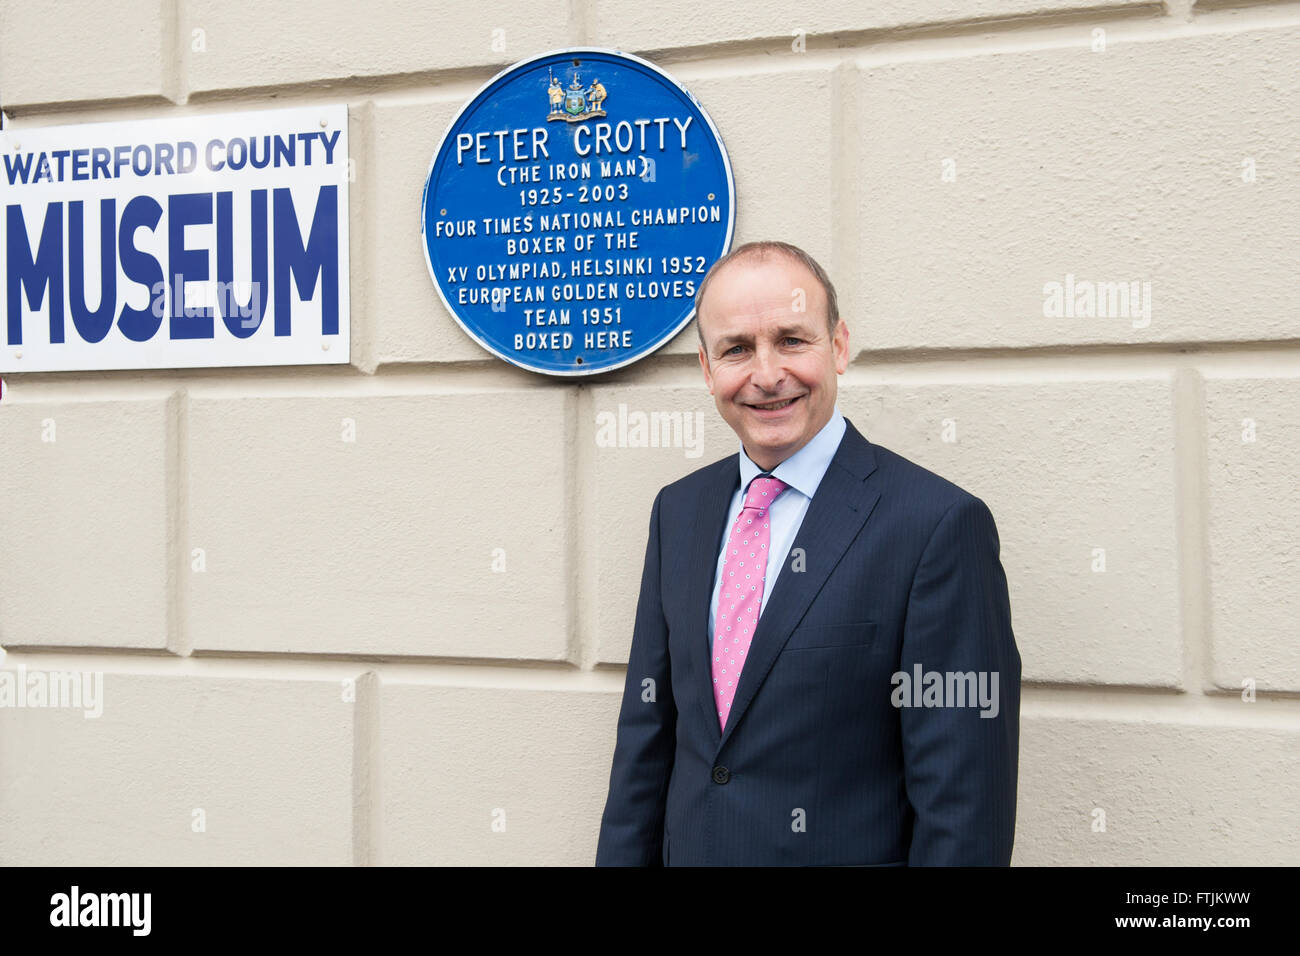 Former Minister of Health in Ireland, Micheál Martin who is the leader of the Irish Political Party Fianna - Stock Image